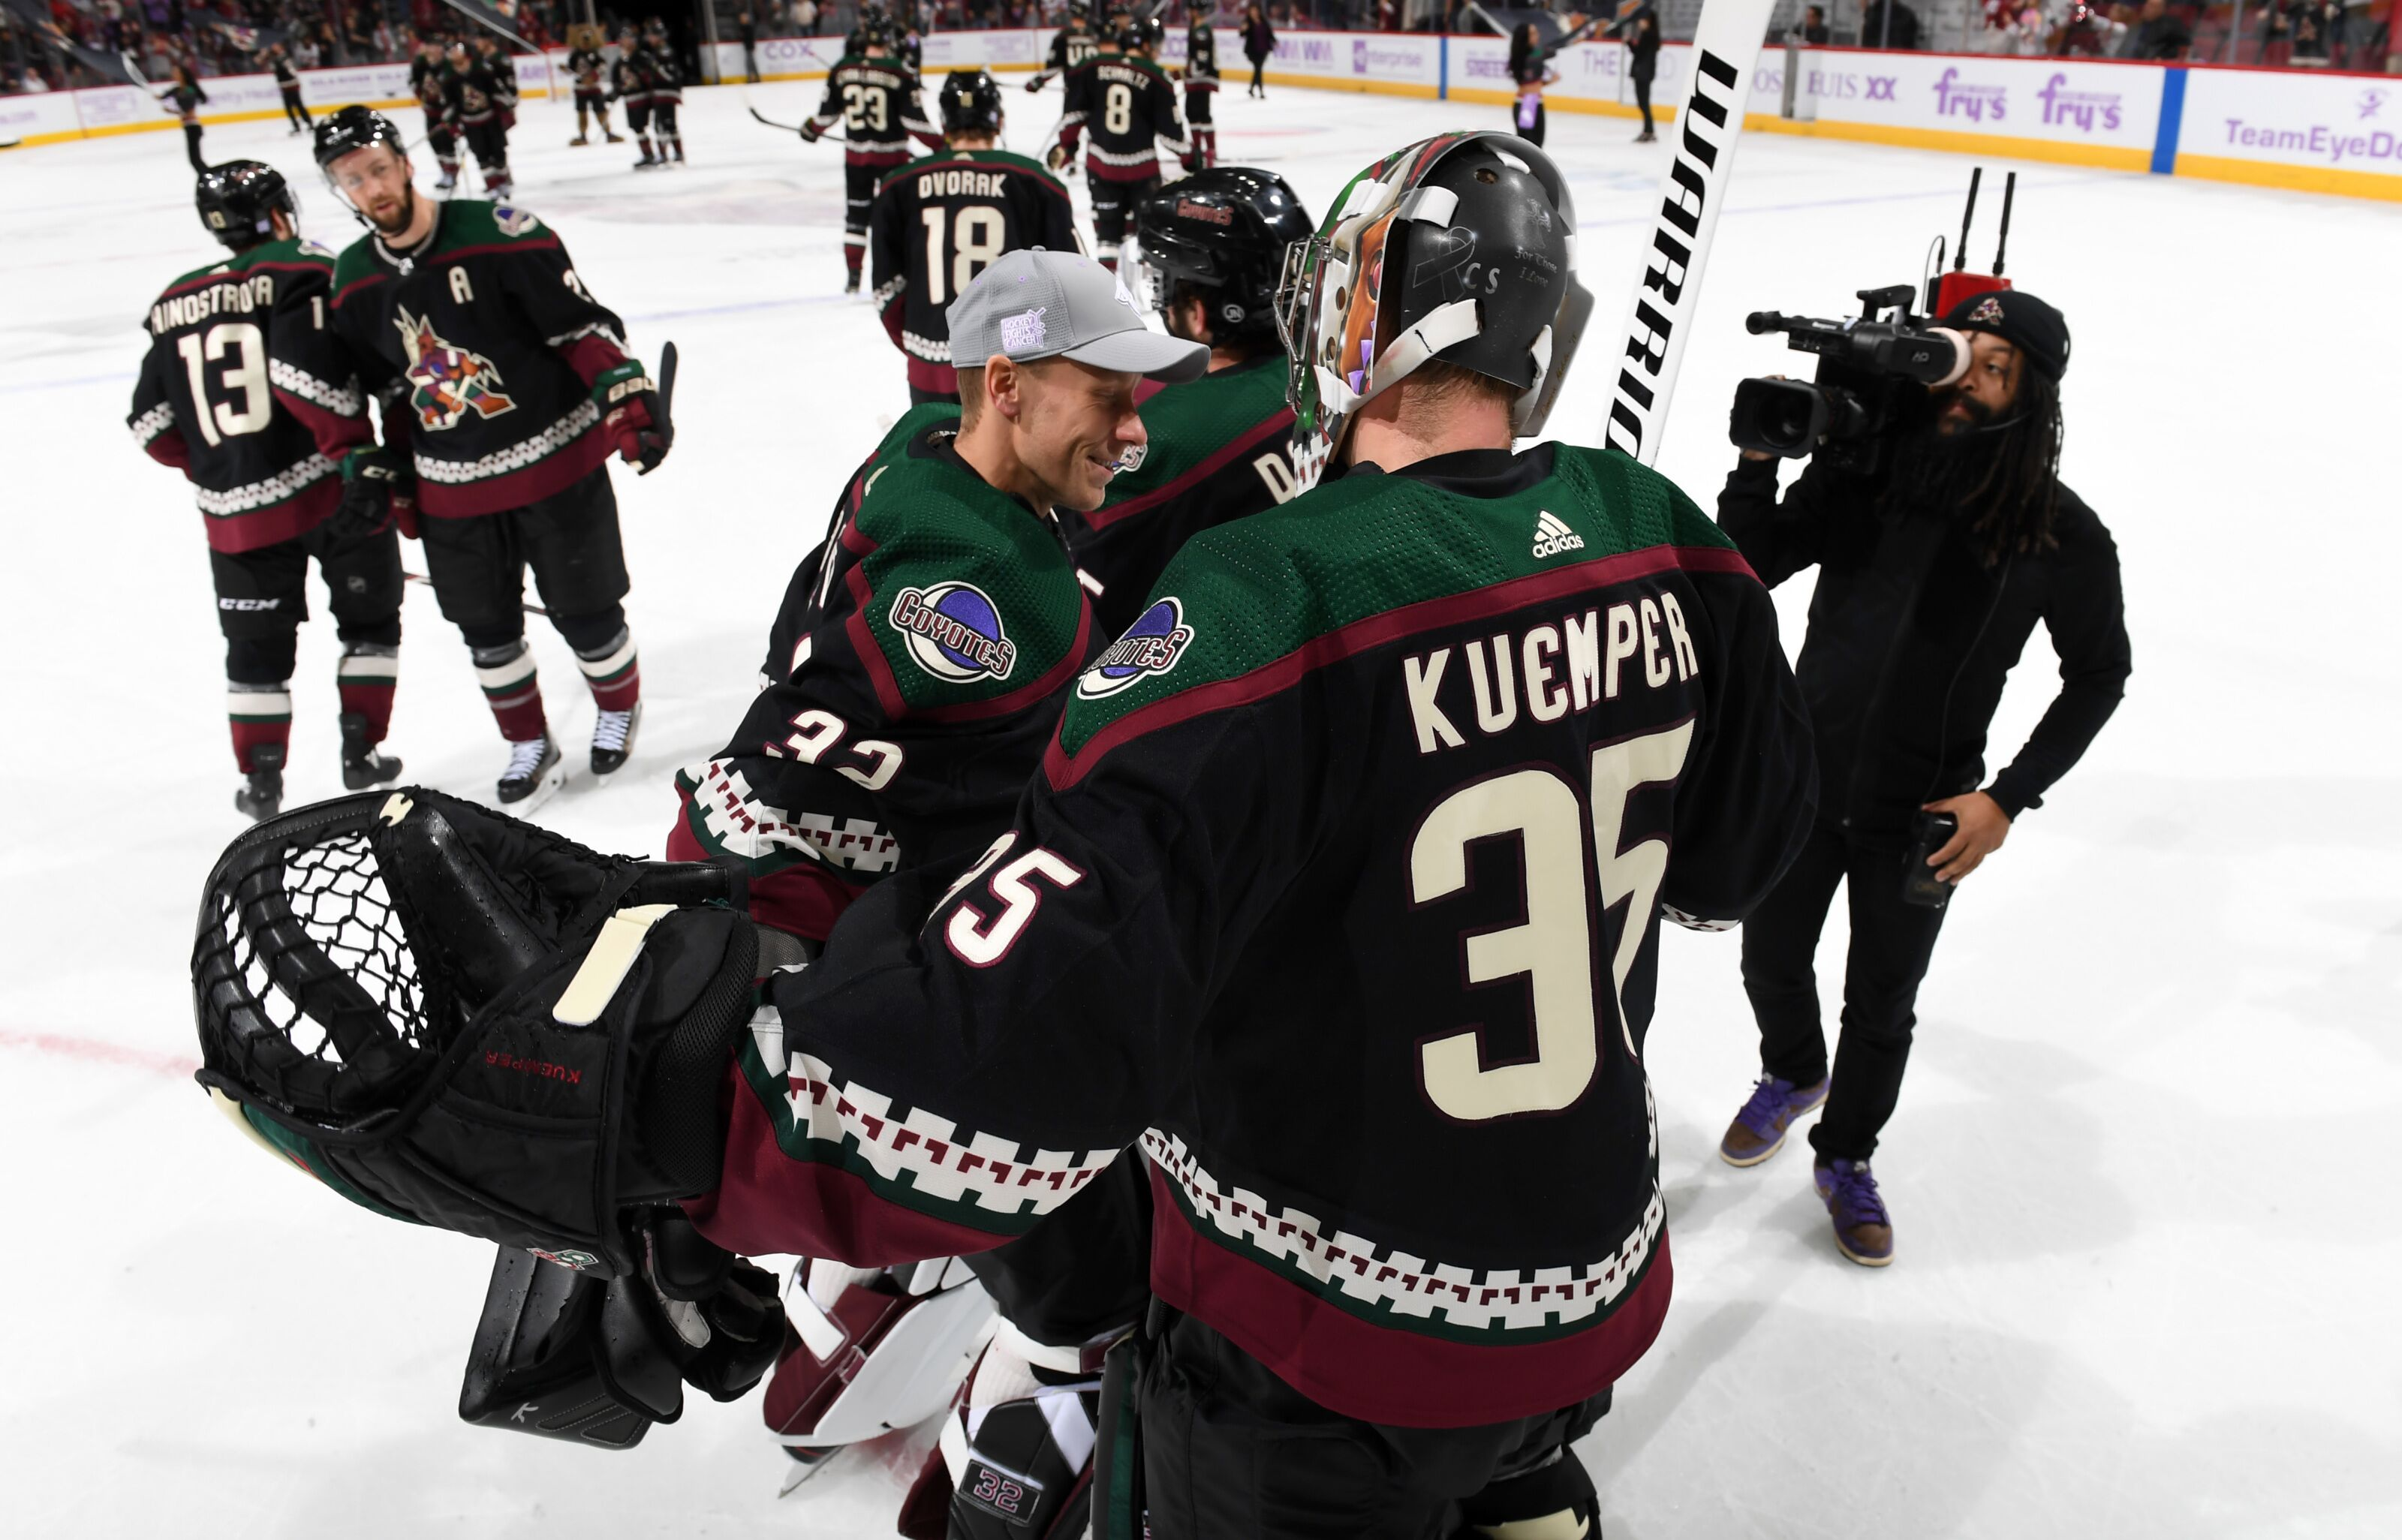 Coyotes goaltenders Darcy Kuemper and Antti Raanta have wins for the history books